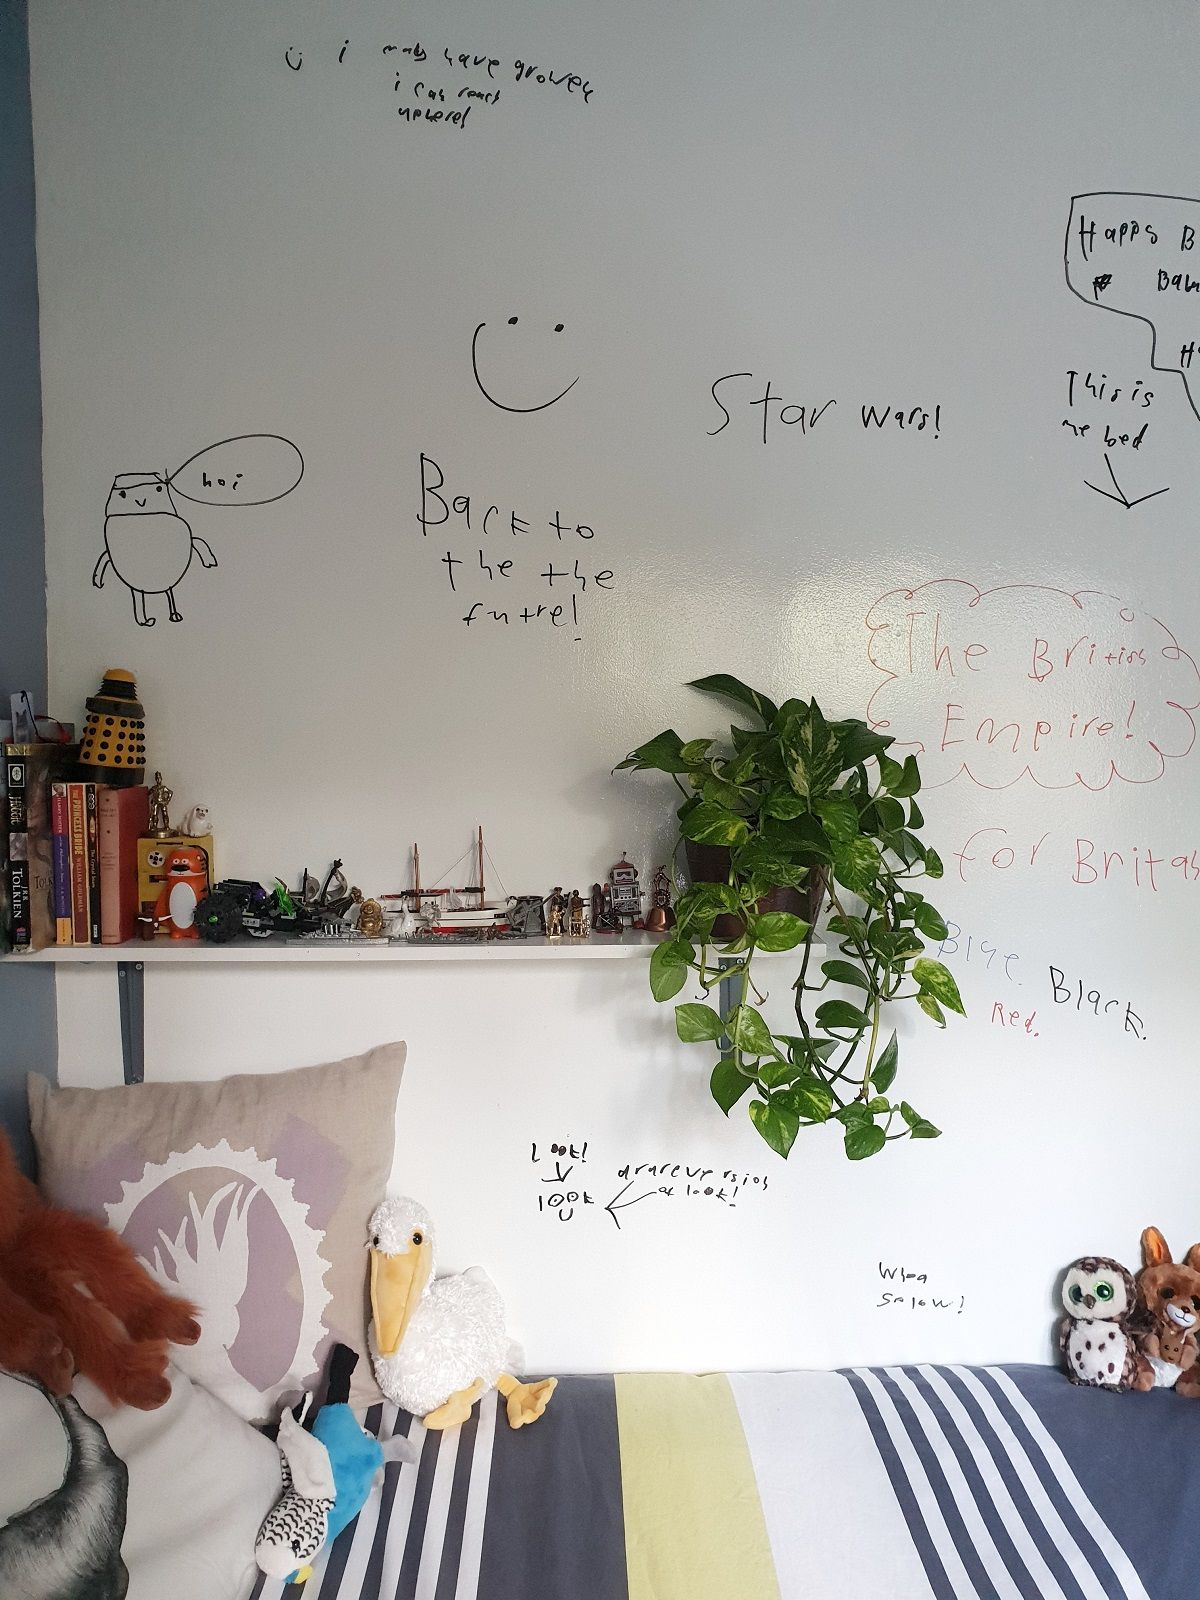 Turn A Wall Into A Whiteboard How To Turn A Wall Into A Whiteboard Using Paint Diys